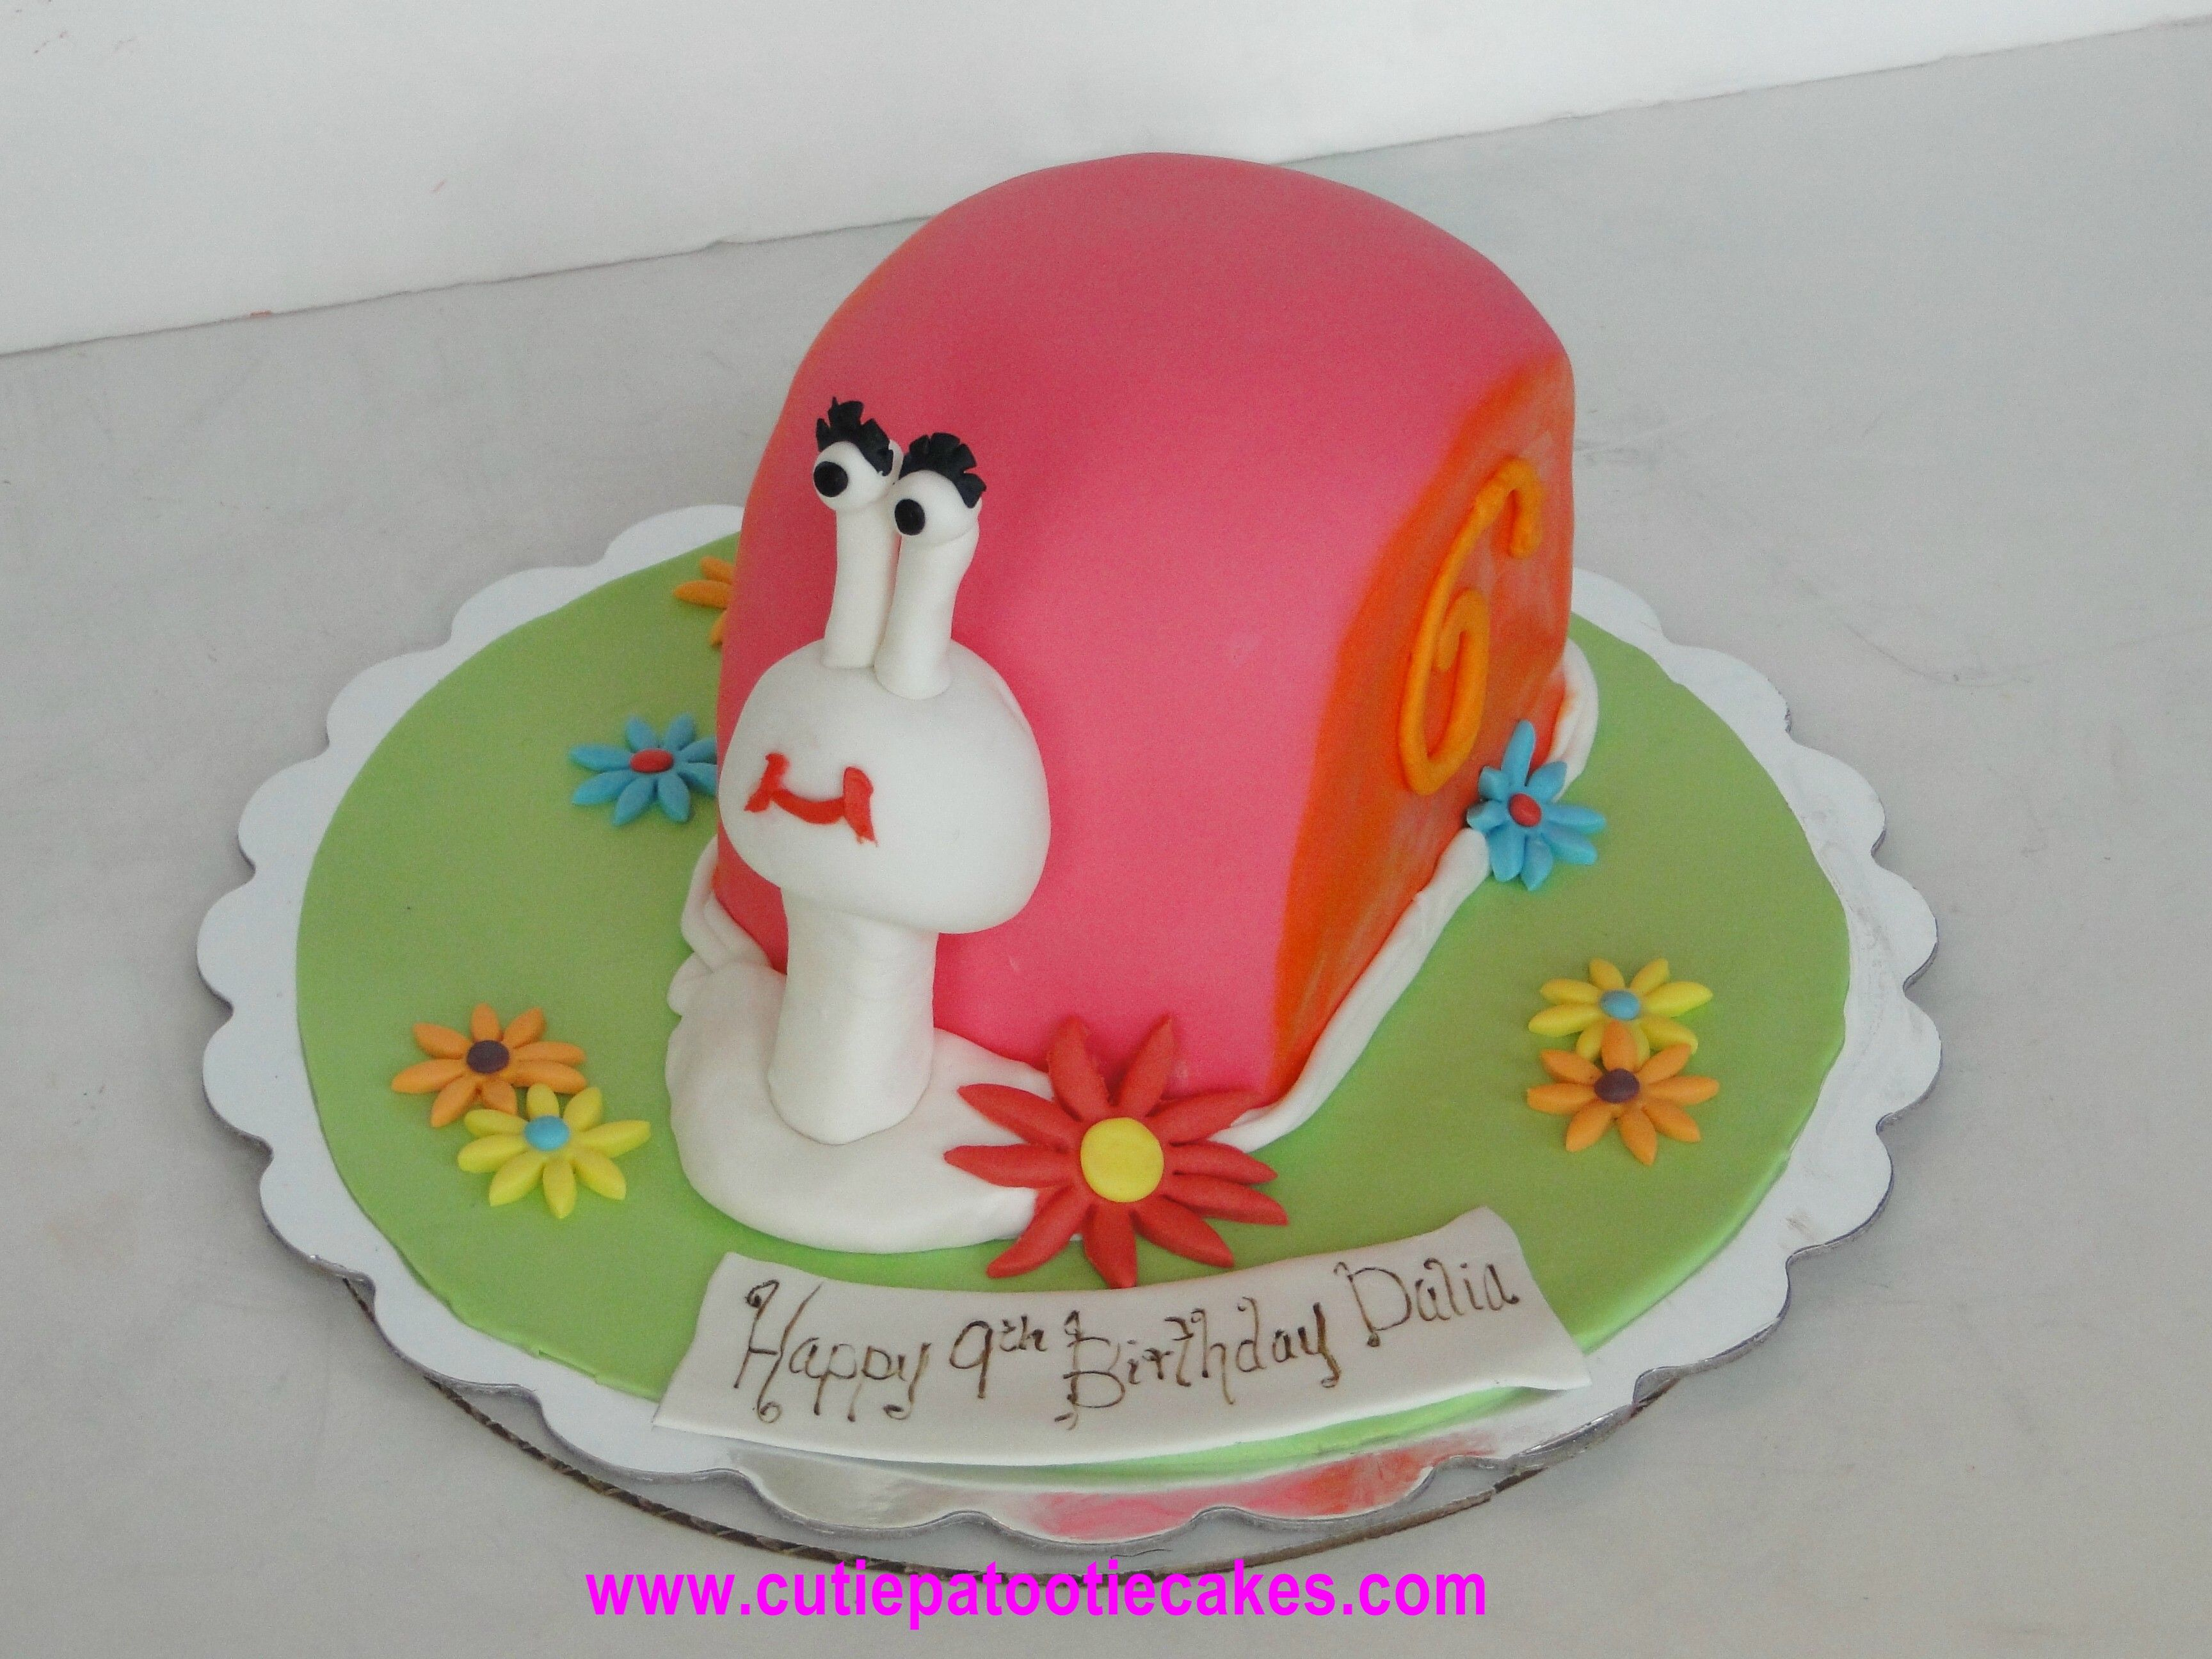 Snail Cake Cakes Cupcakes And More Pinterest Snail Cake Cake